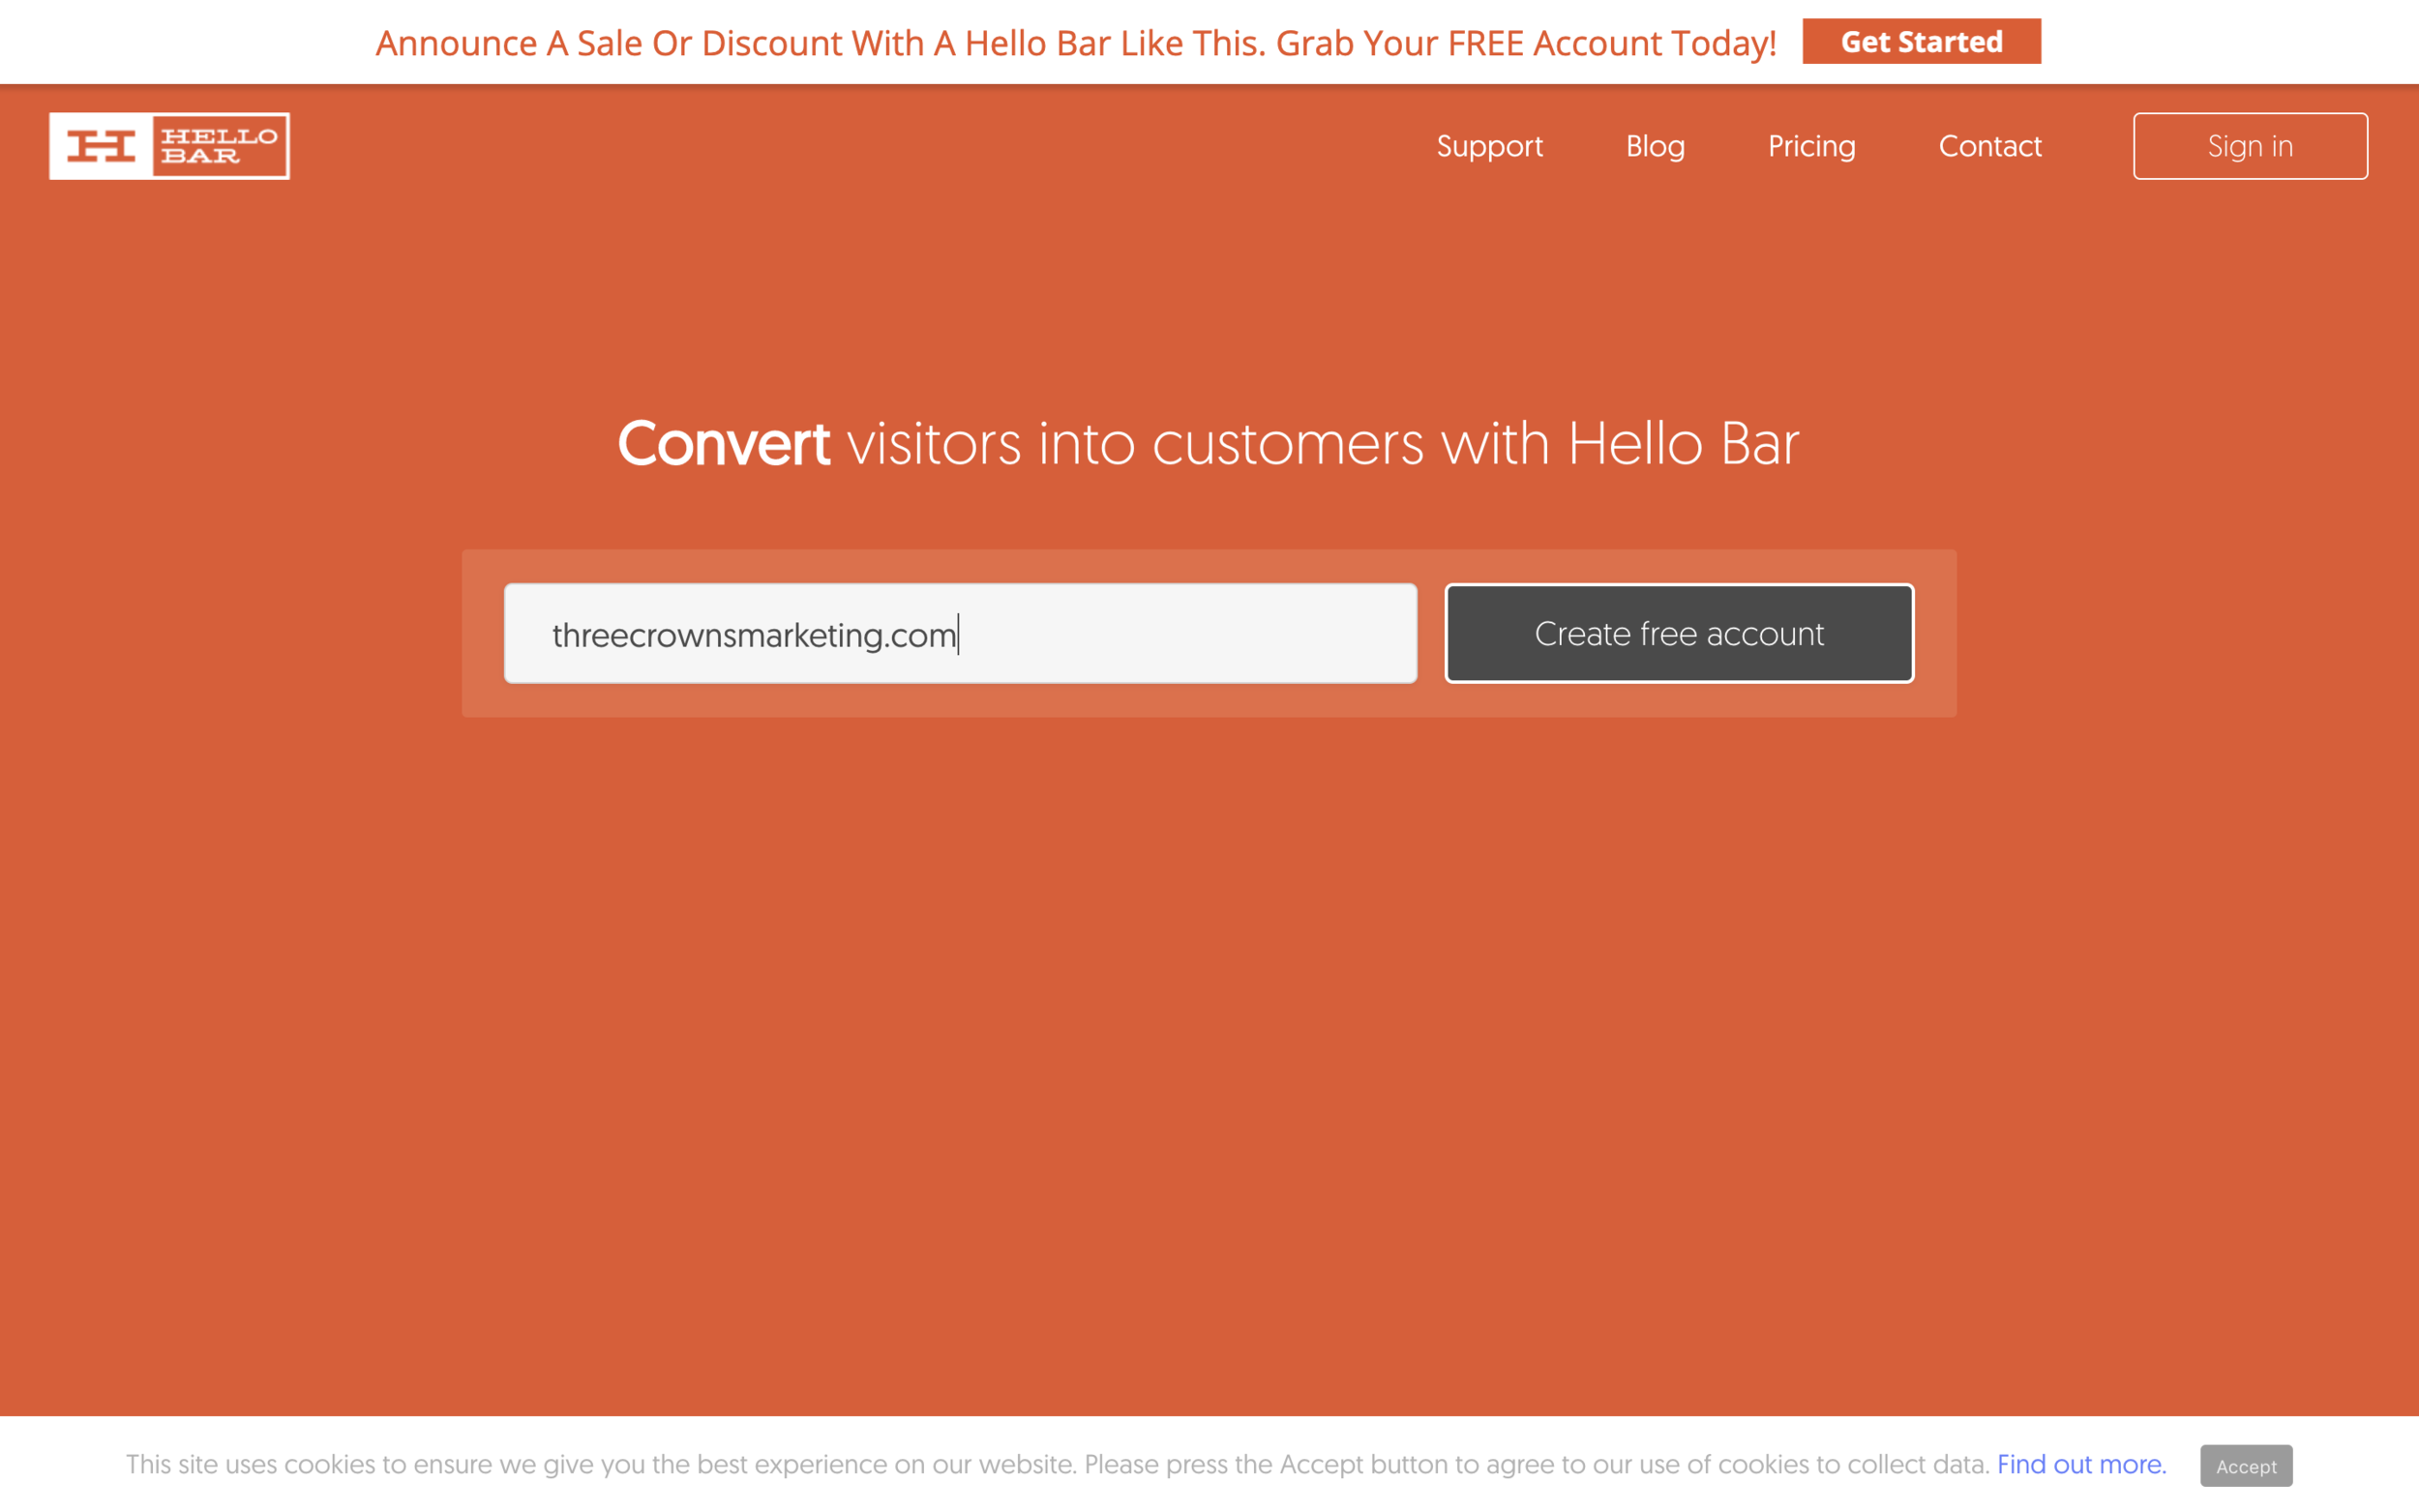 website visitor conversion tool Hellobar Three Crowns Copywriting and Marketing